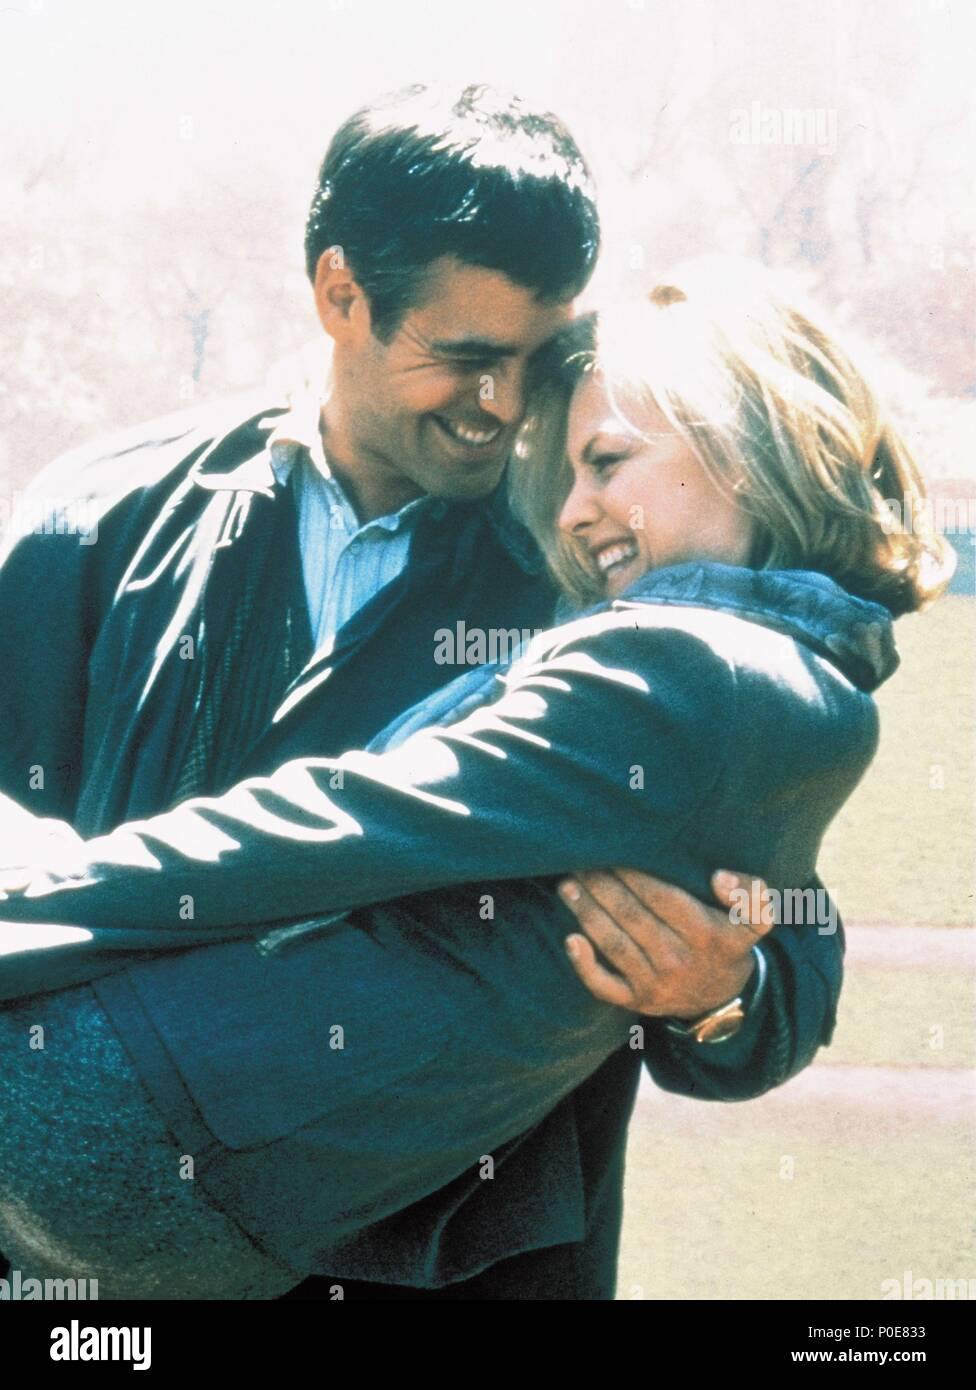 Original Film Title: ONE FINE DAY.  English Title: ONE FINE DAY.  Film Director: MICHAEL HOFFMAN.  Year: 1996.  Stars: GEORGE CLOONEY; MICHELLE PFEIFFER. Credit: 20TH CENTURY FOX / Album Stock Photo